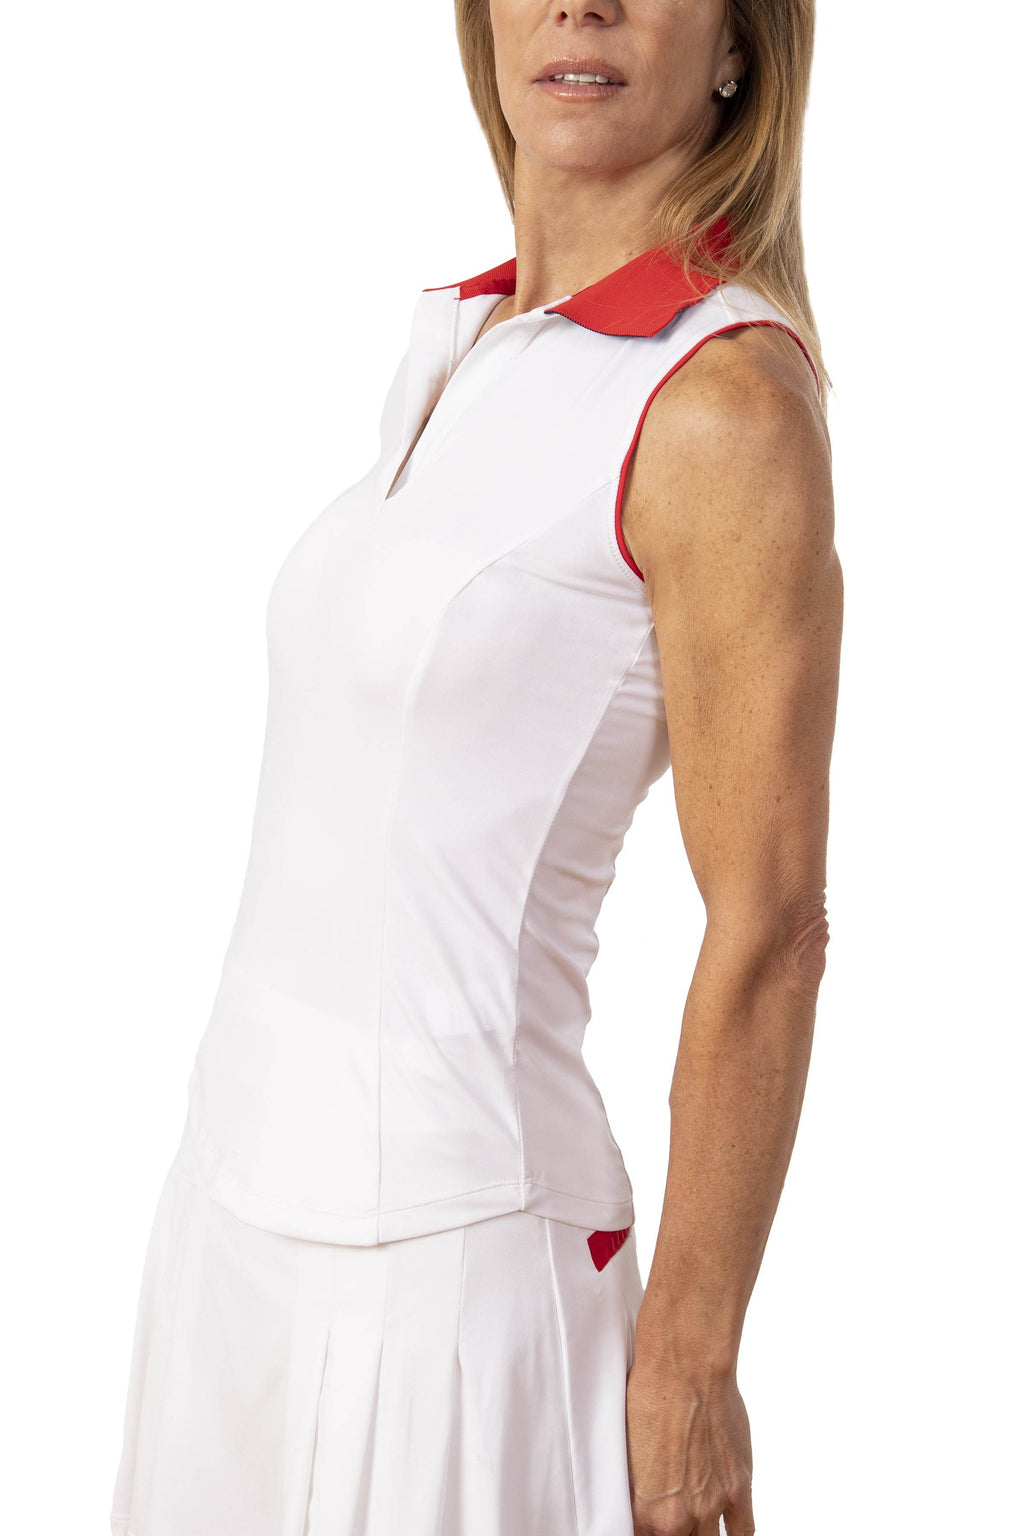 Annie Sleeveless Shirt- White/Red